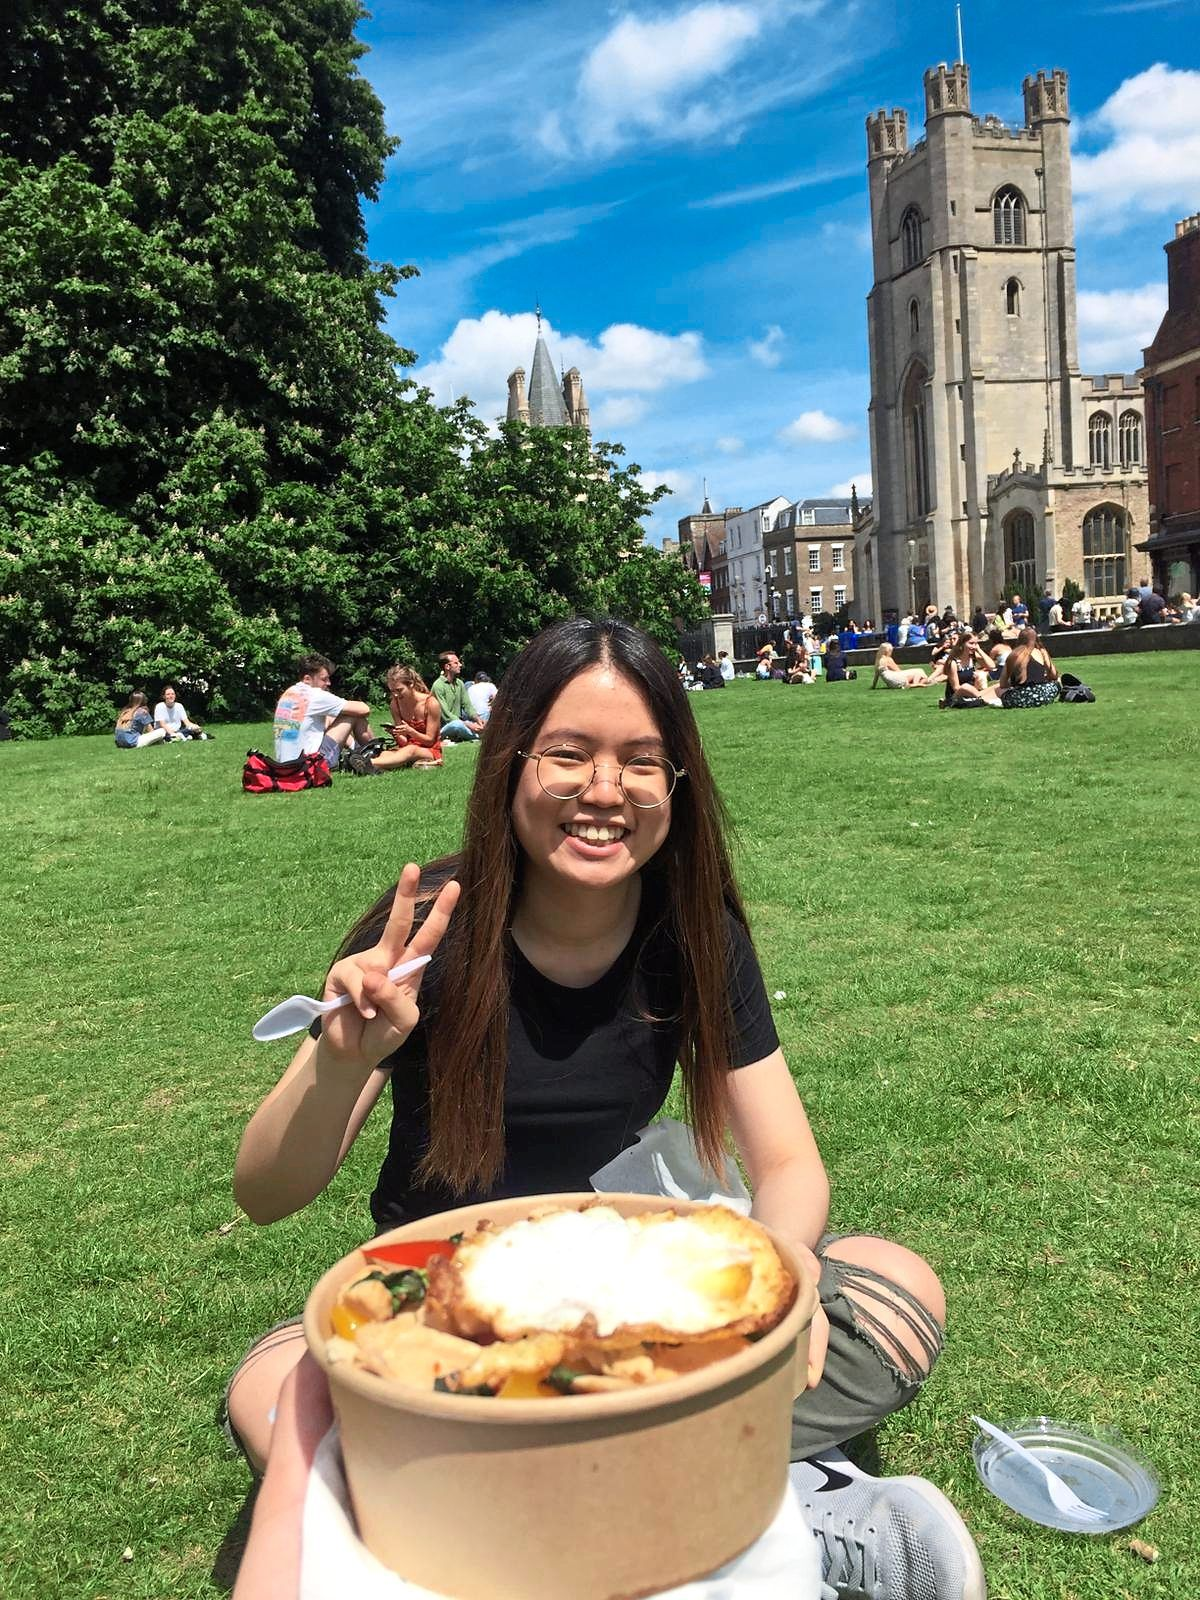 Dream come true: Teoh at Cambridge University, where she has just completed her first year as a law student with first class honours.